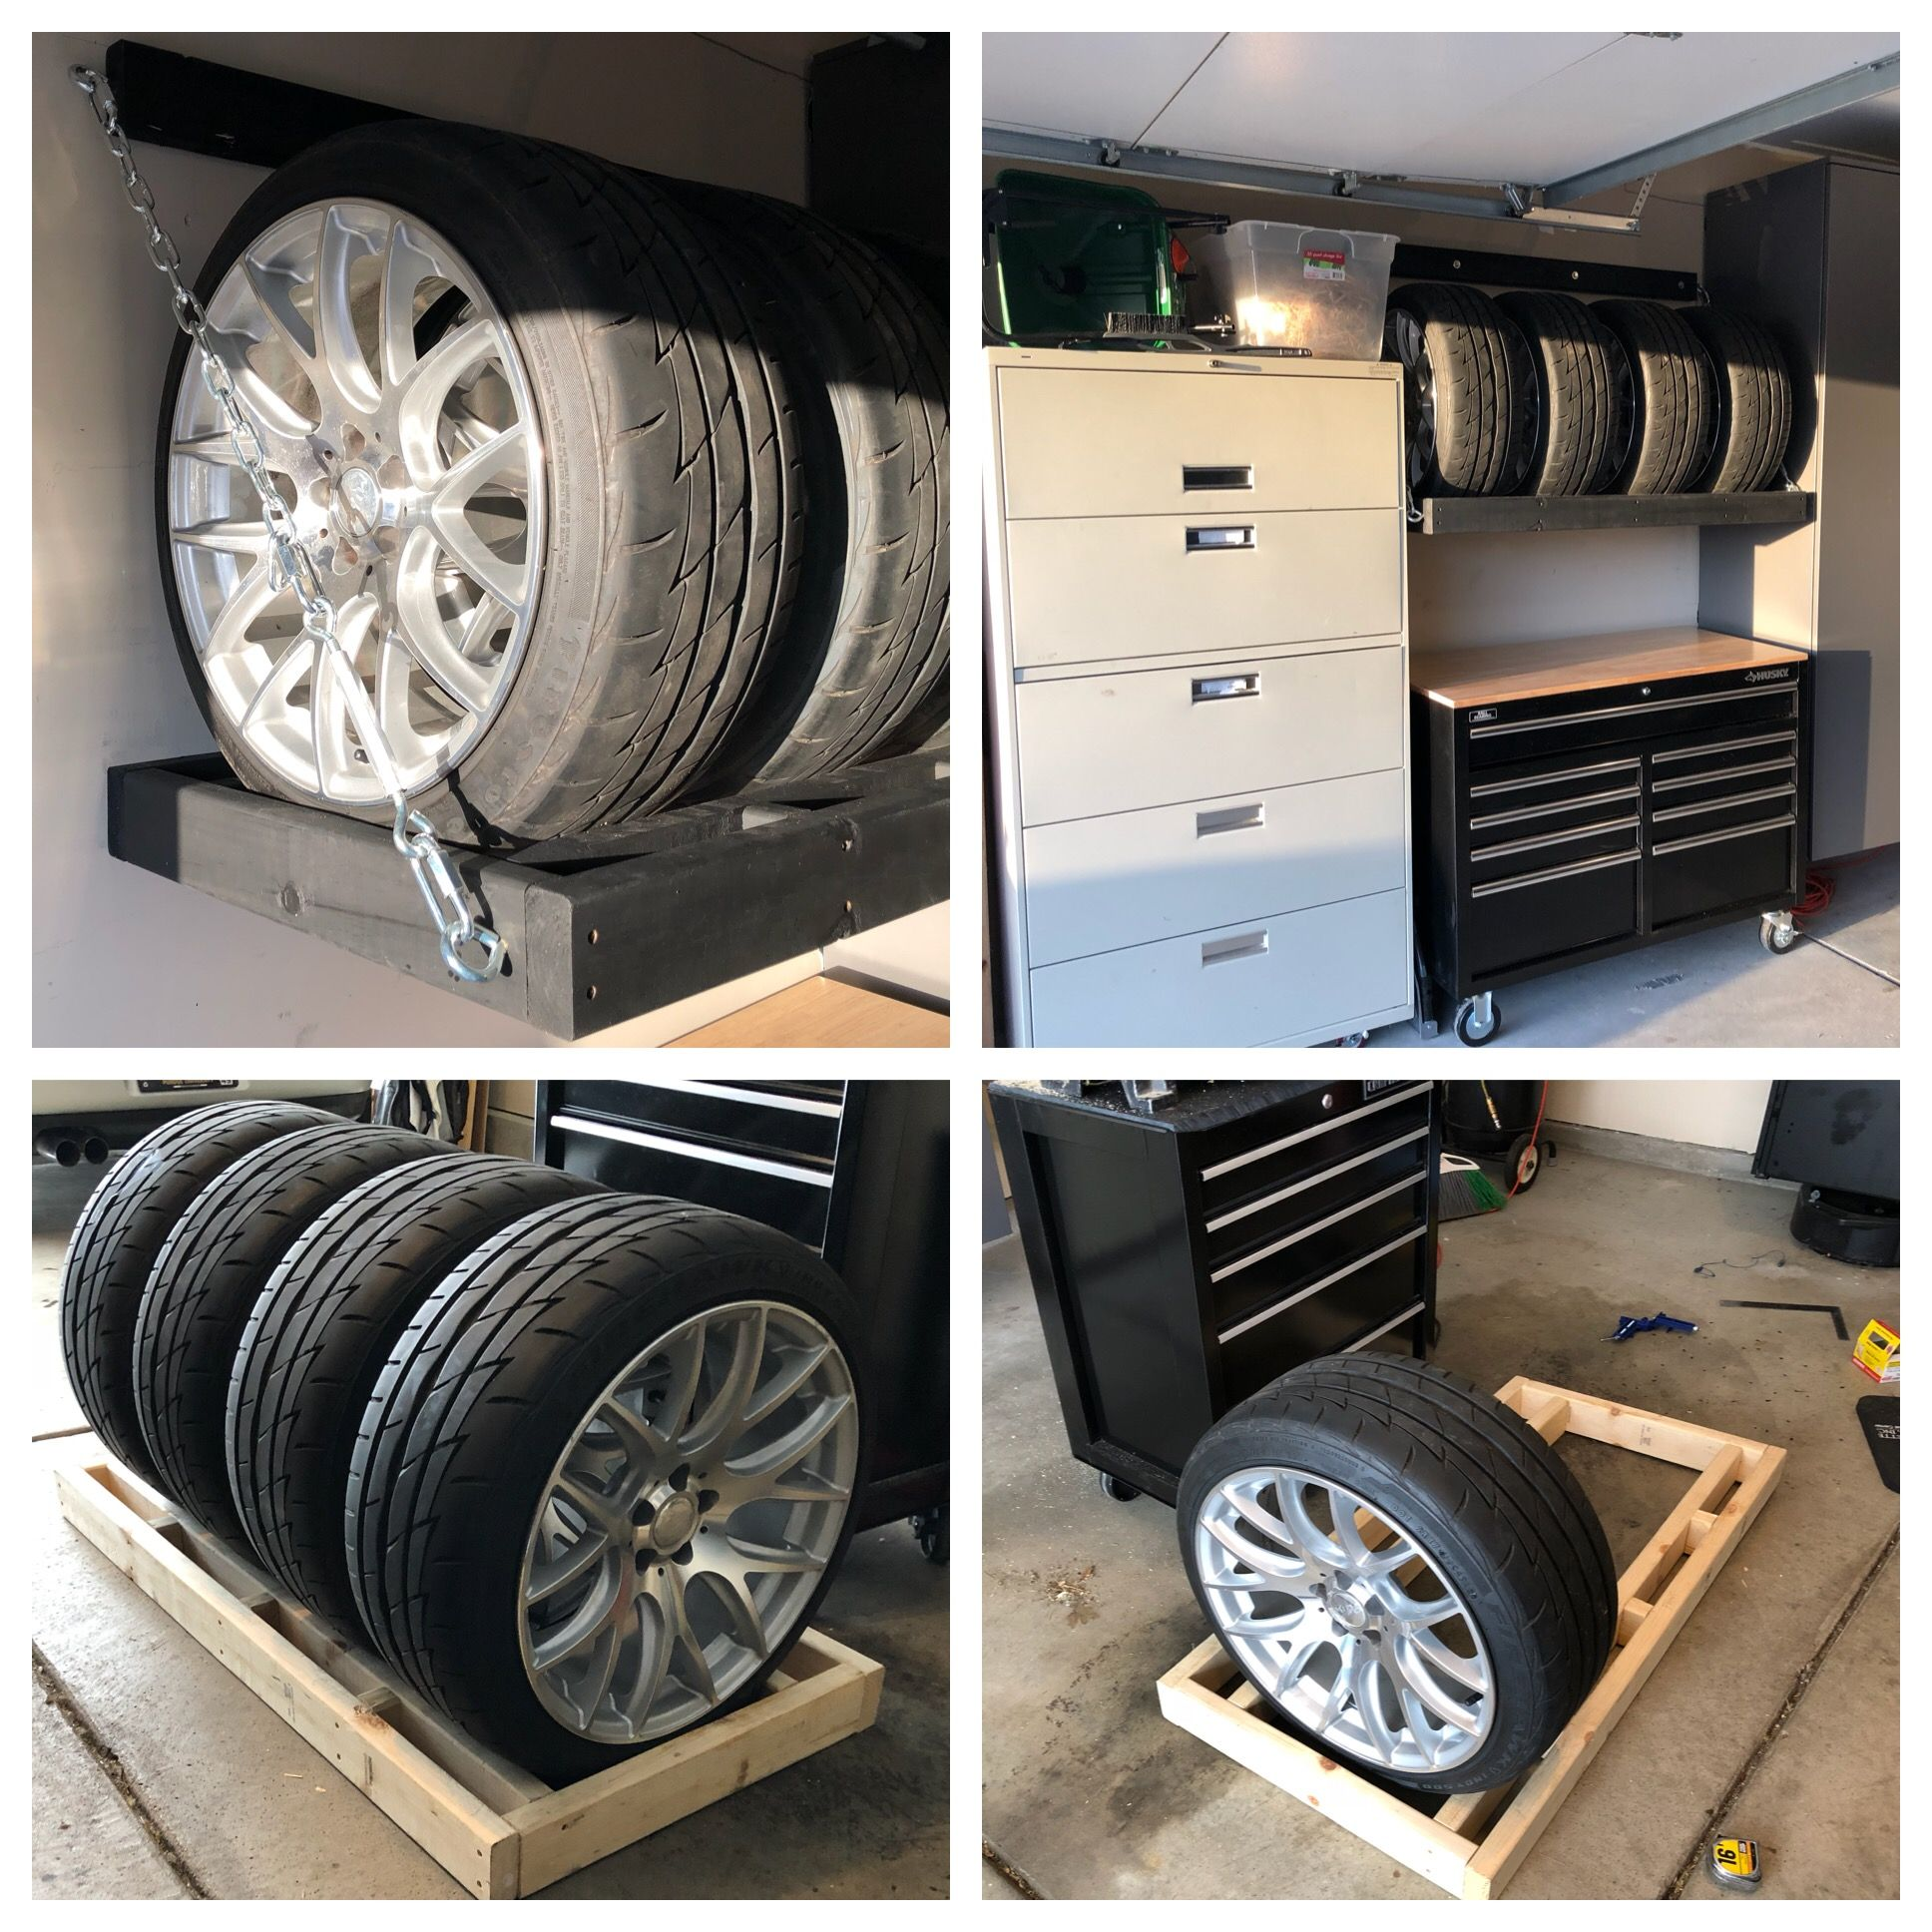 Diy Tire Rack Wall Mounted Lag Screws Chains Quick Links Turnbuckles Tire Rack Diy Projects Rack